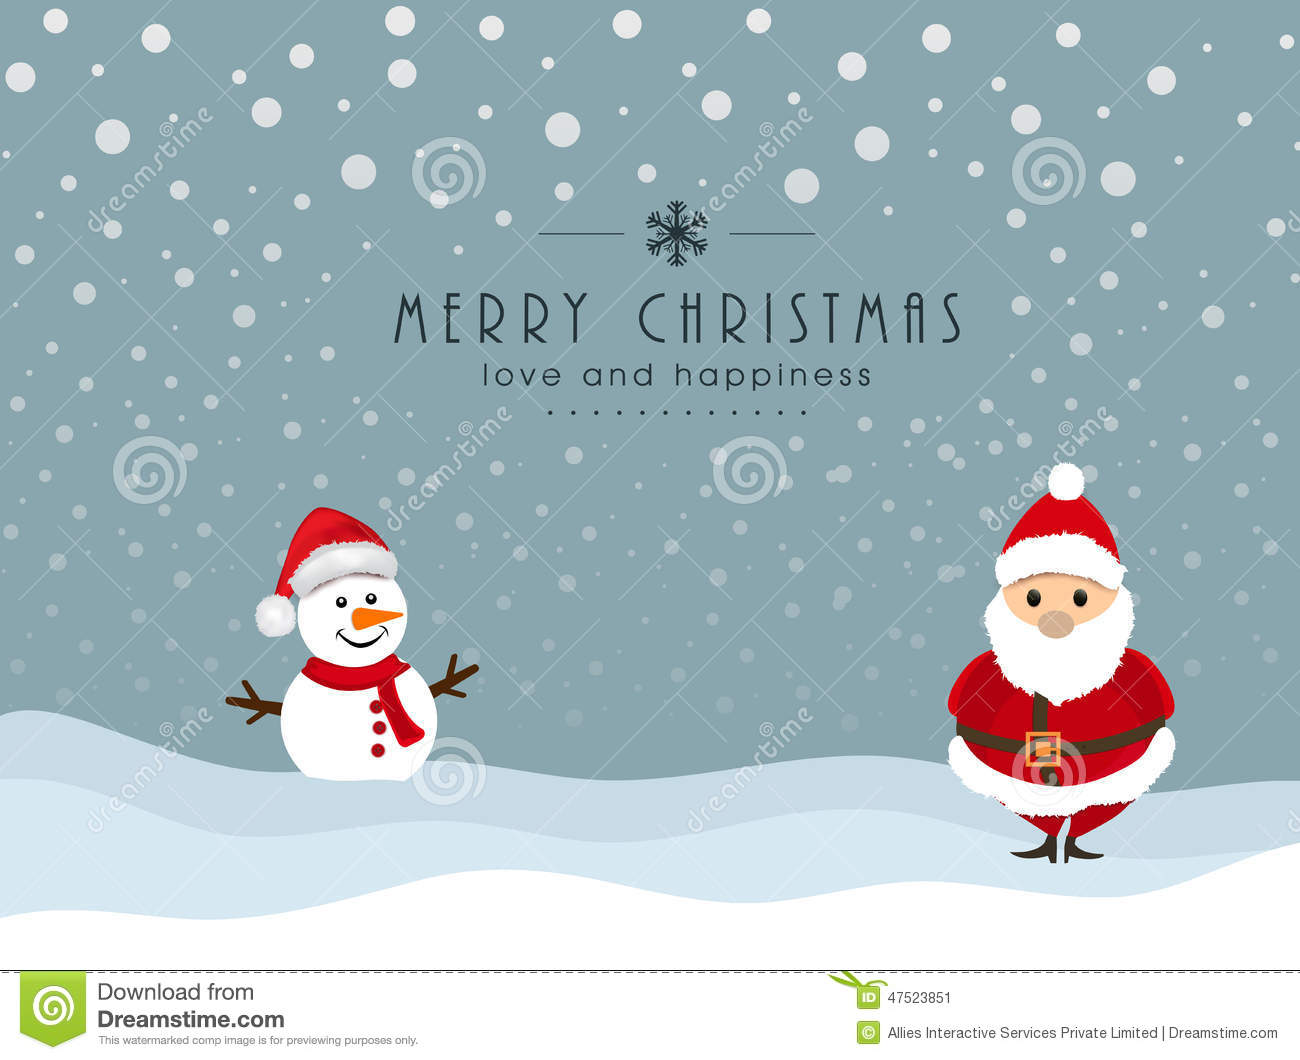 Merry christmas celebration with snowman and santa claus stock merry christmas celebration with snowman and santa claus kristyandbryce Image collections